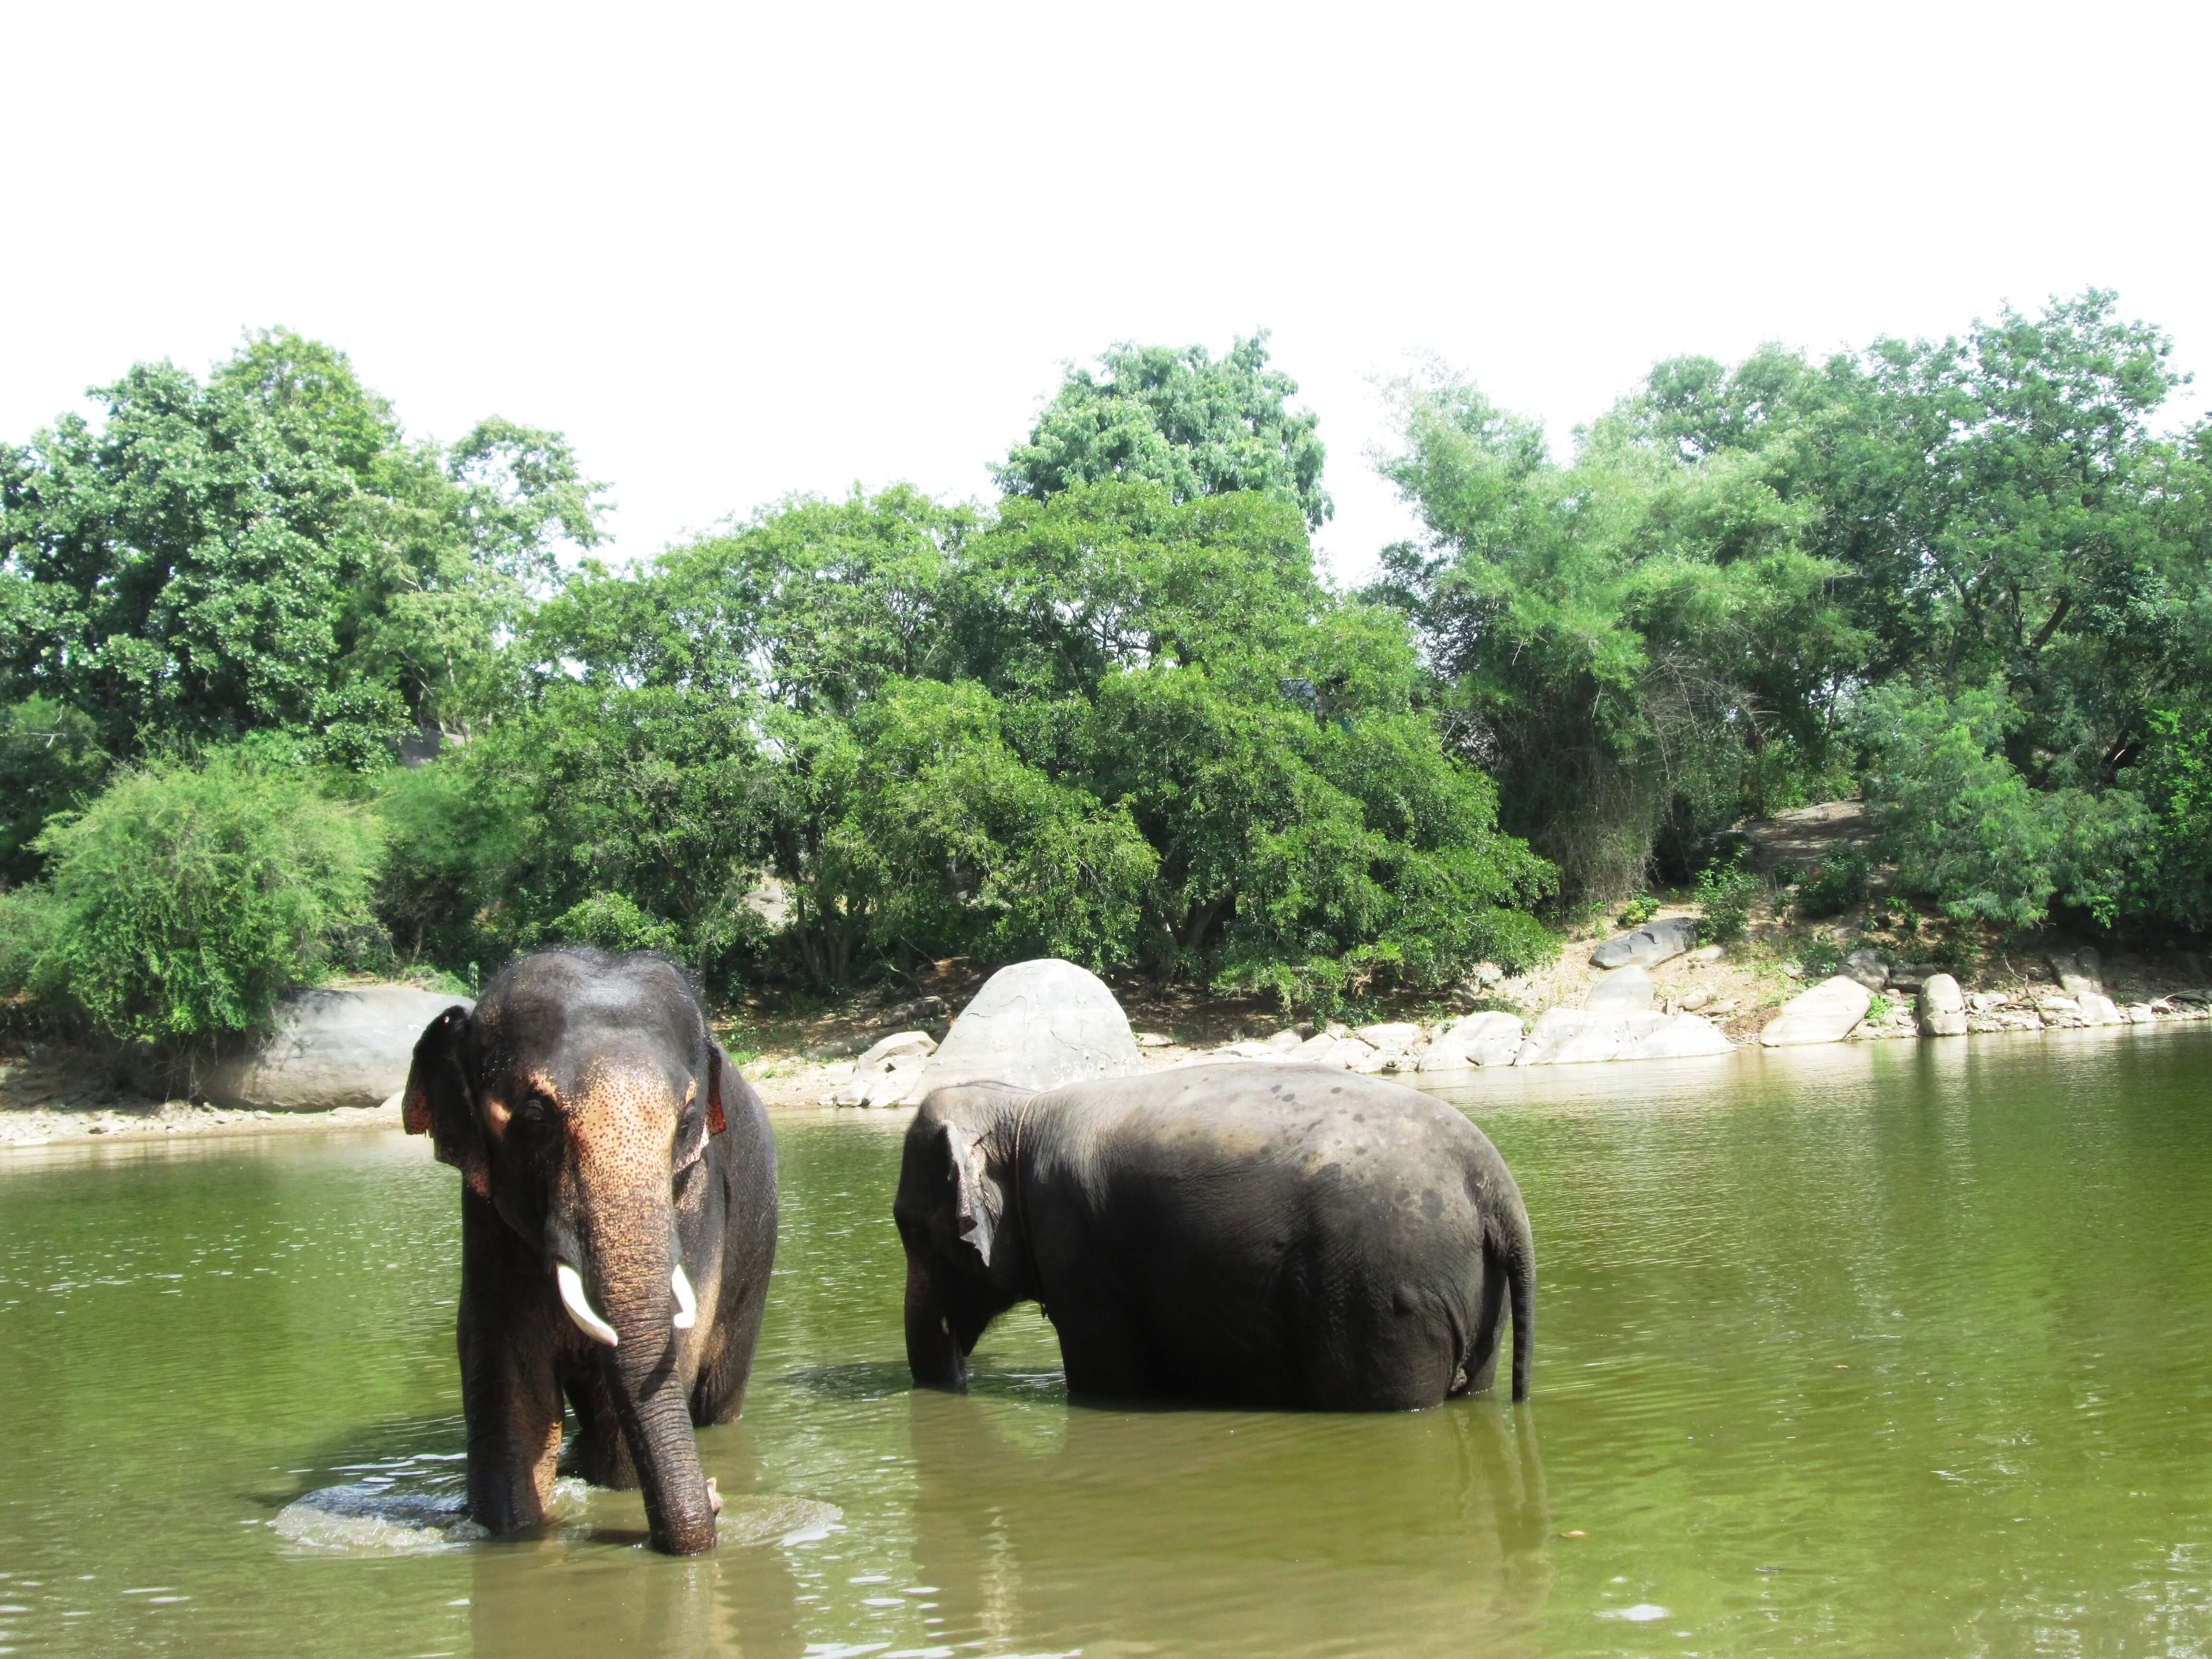 Sunder and Lakshmi are at ease in the pond and with each other.